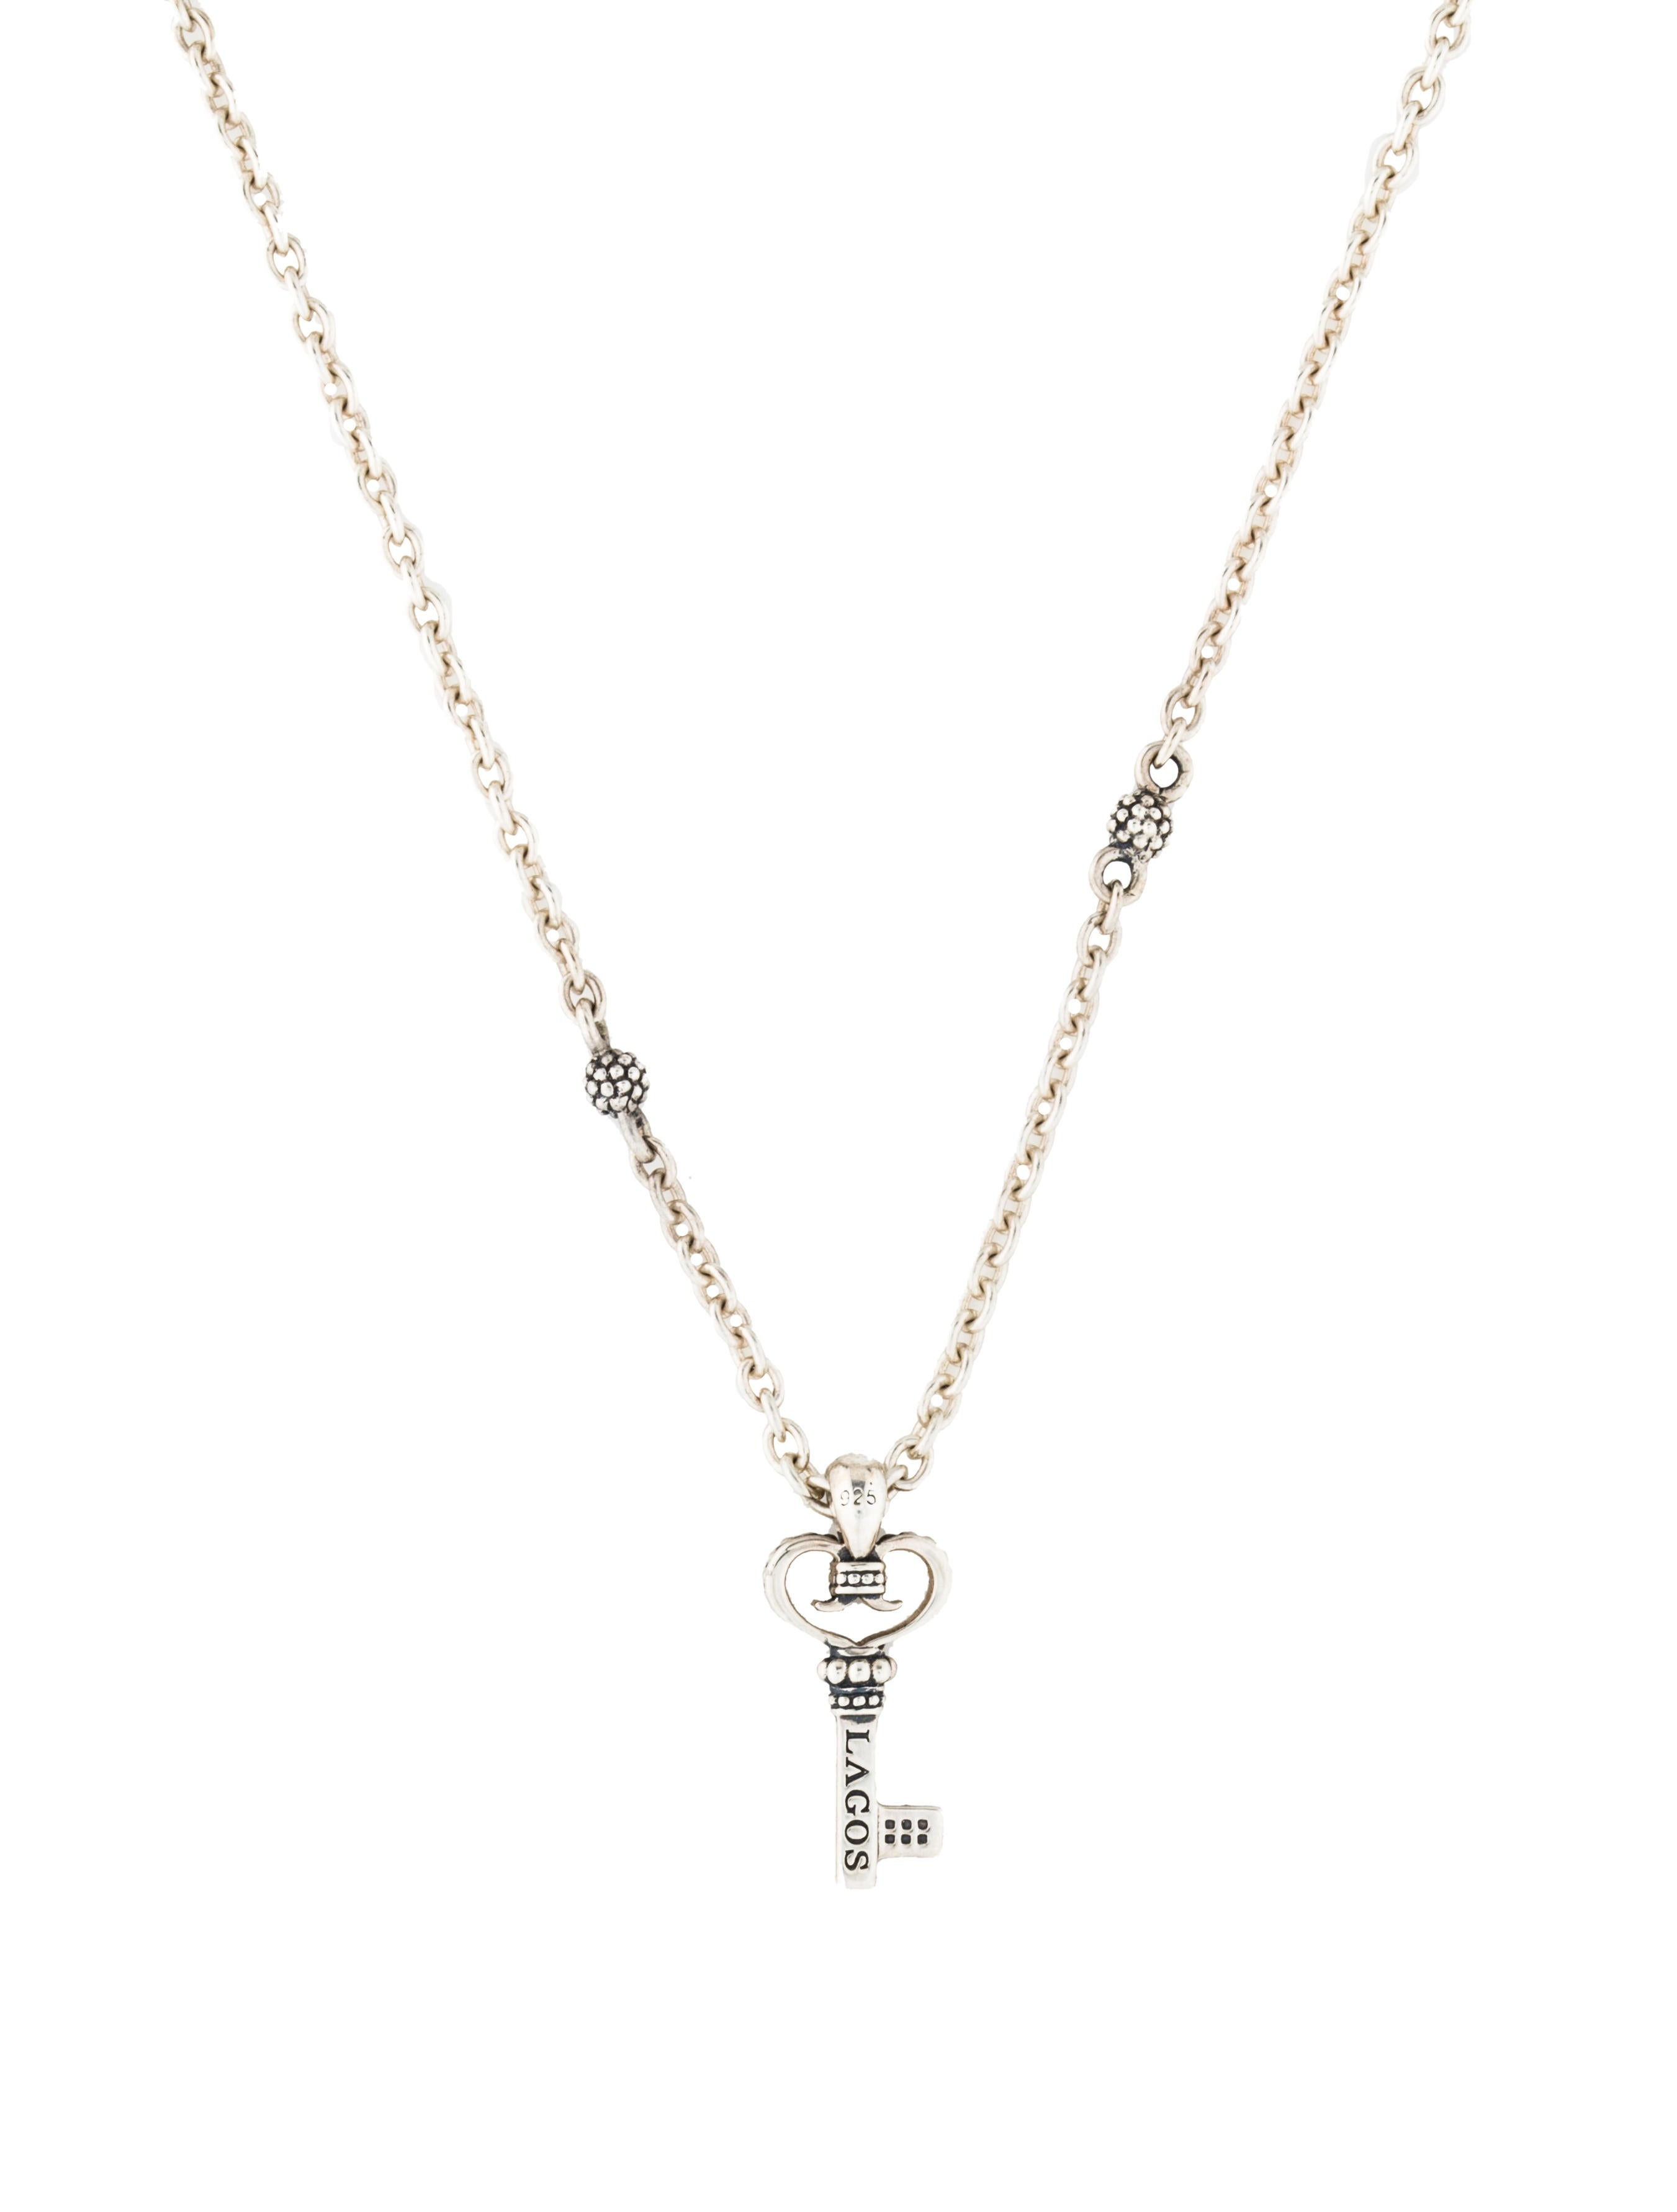 Lagos beloved diamond key pendant necklace necklaces lag22829 beloved diamond key pendant necklace mozeypictures Image collections